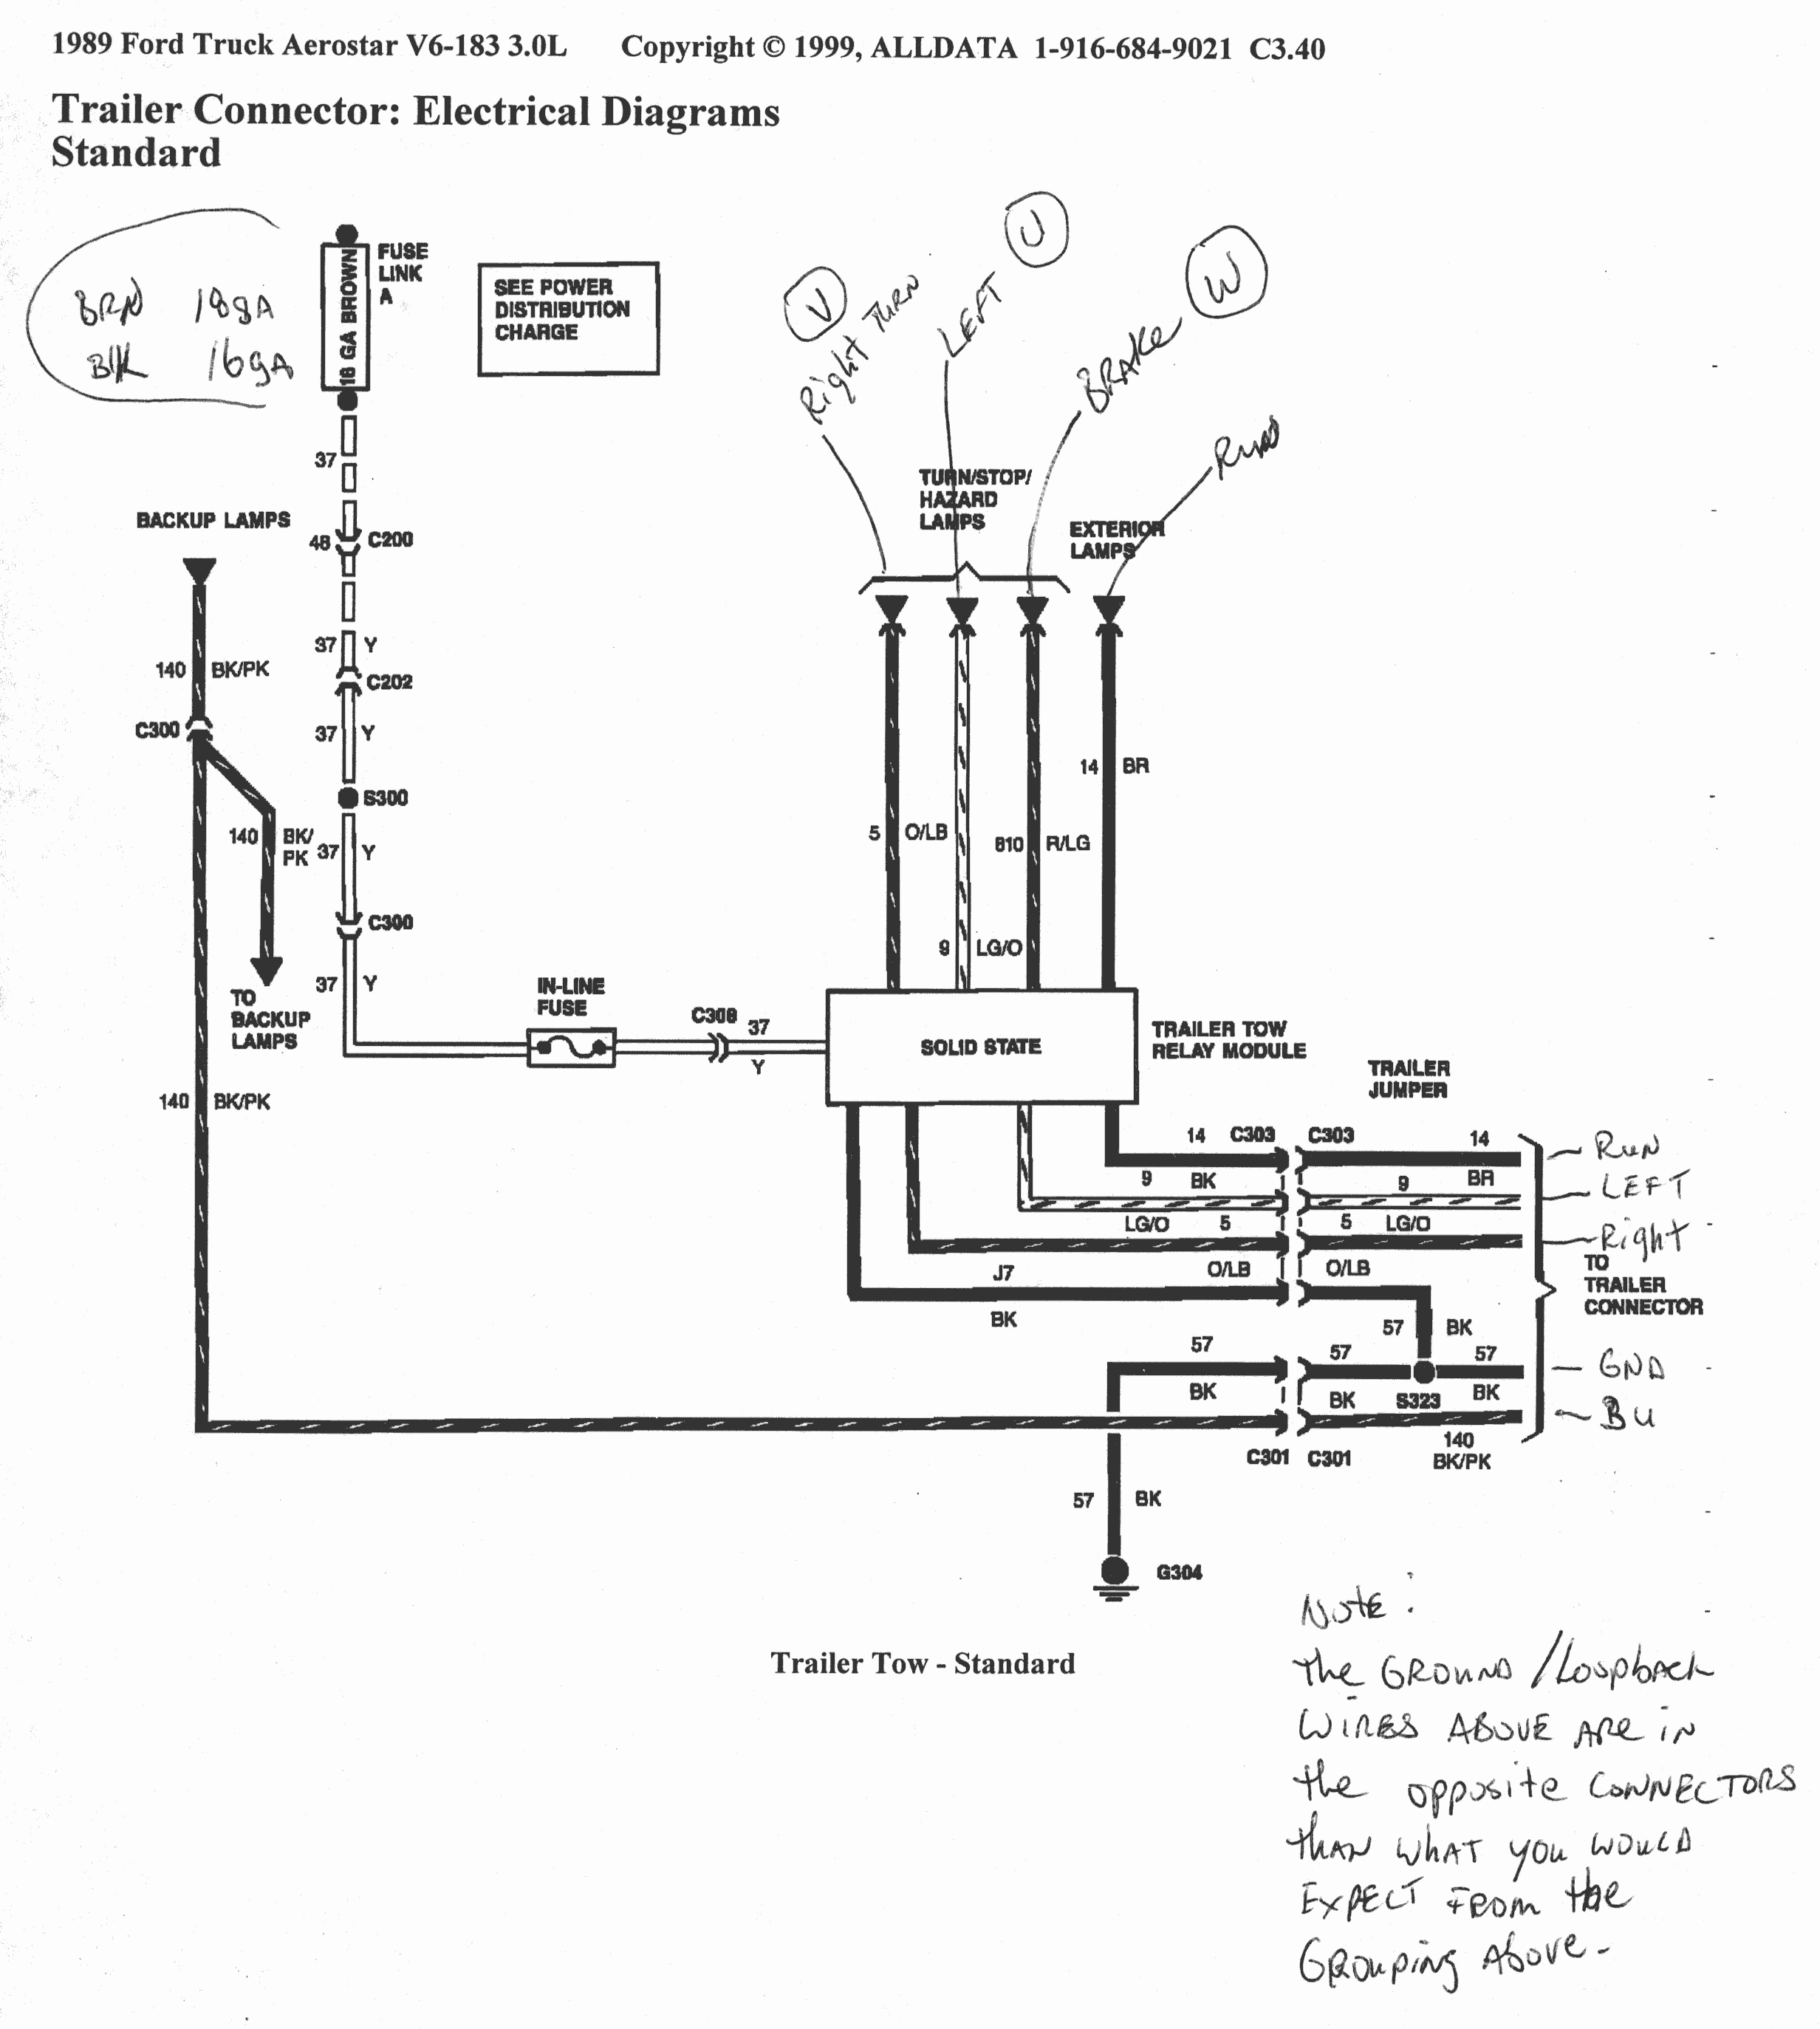 Ford F 250 Trailer Wiring Diagram | Wiring Library - 2006 Ford F 350 Trailer Wiring Diagram